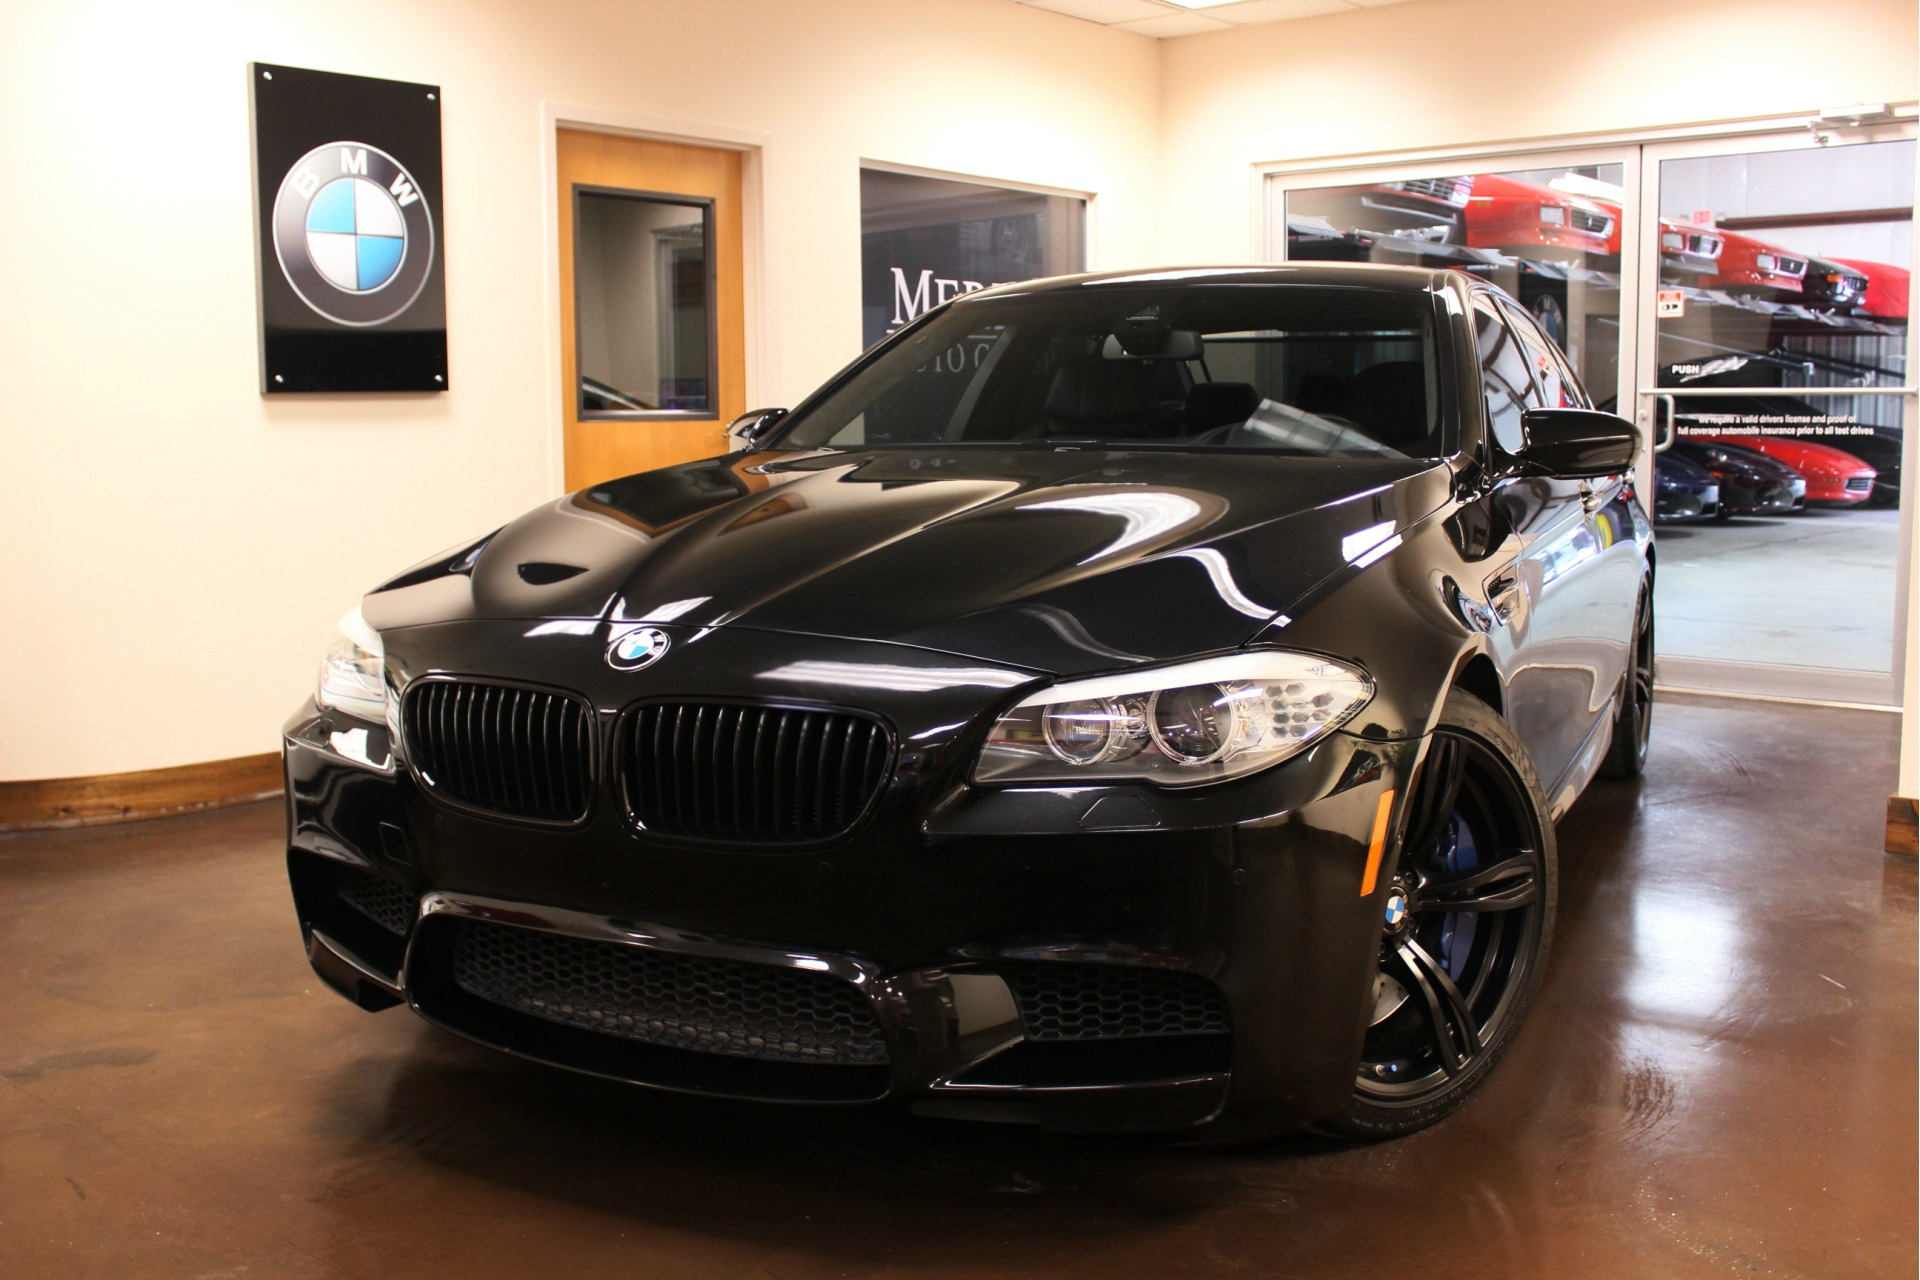 used 2013 bmw m5 stock p3546a ultra luxury car from merlin auto group. Black Bedroom Furniture Sets. Home Design Ideas